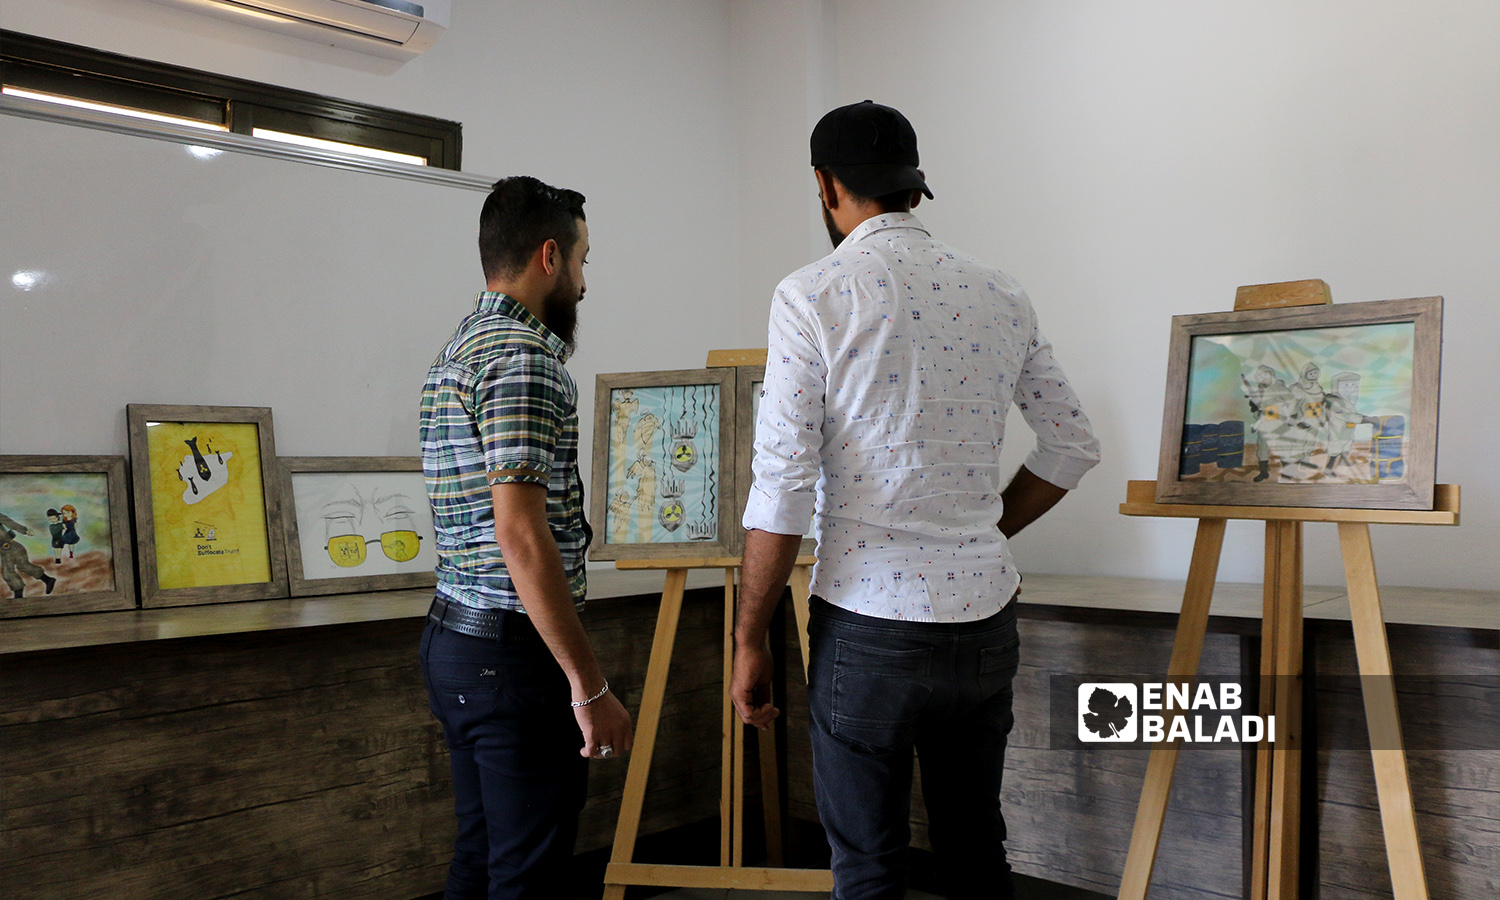 """An art exhibition under the slogan """"Do Not Suffocate Truth"""" was held in Azaz city in Aleppo governorate in remembrance of the Eastern Ghouta's chemical massacre - 21 August 2021 (Enab Baladi / Walid Othman)"""